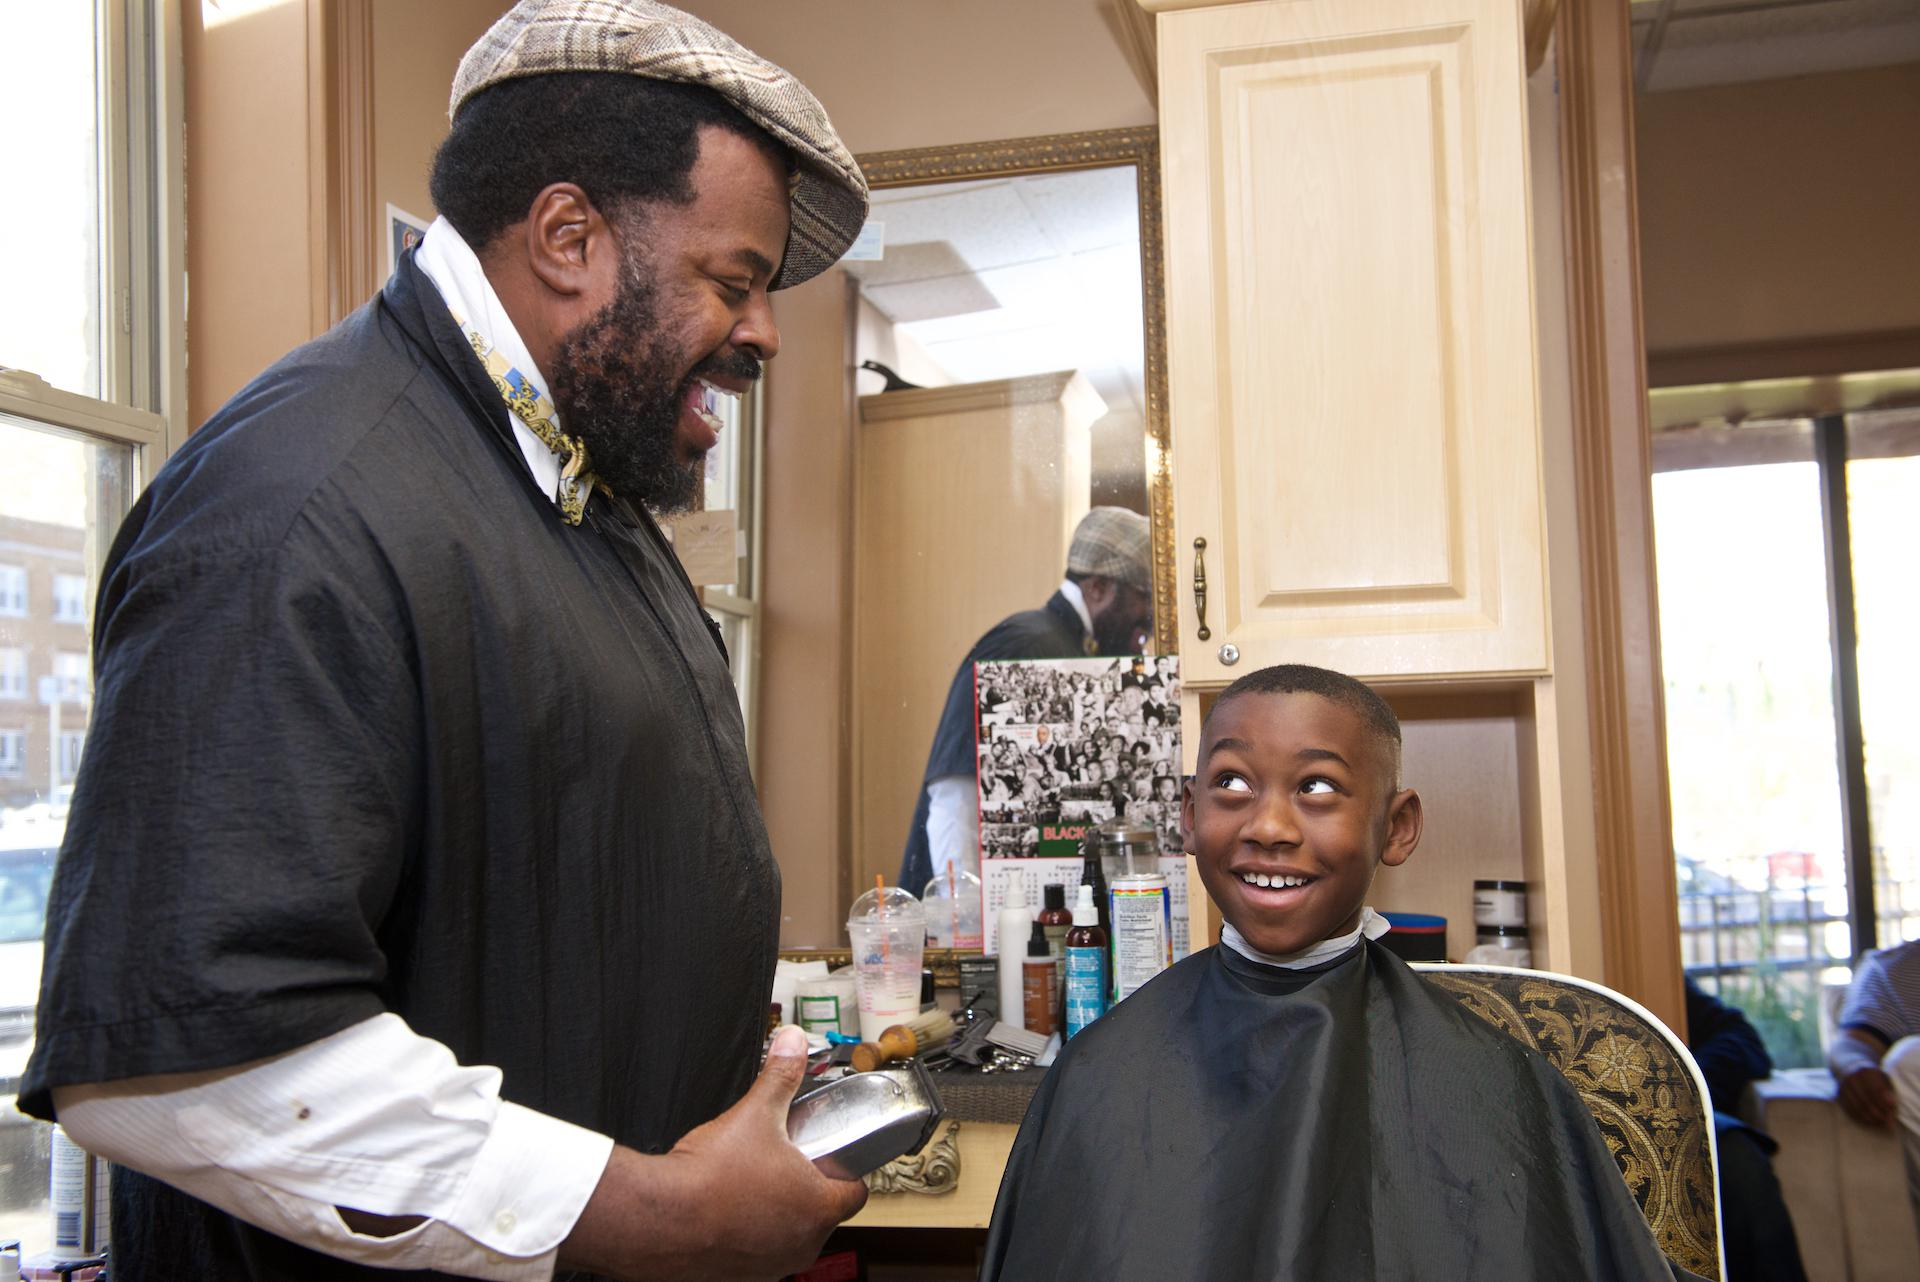 Barber schools teach about hair, shaving and other facial services.